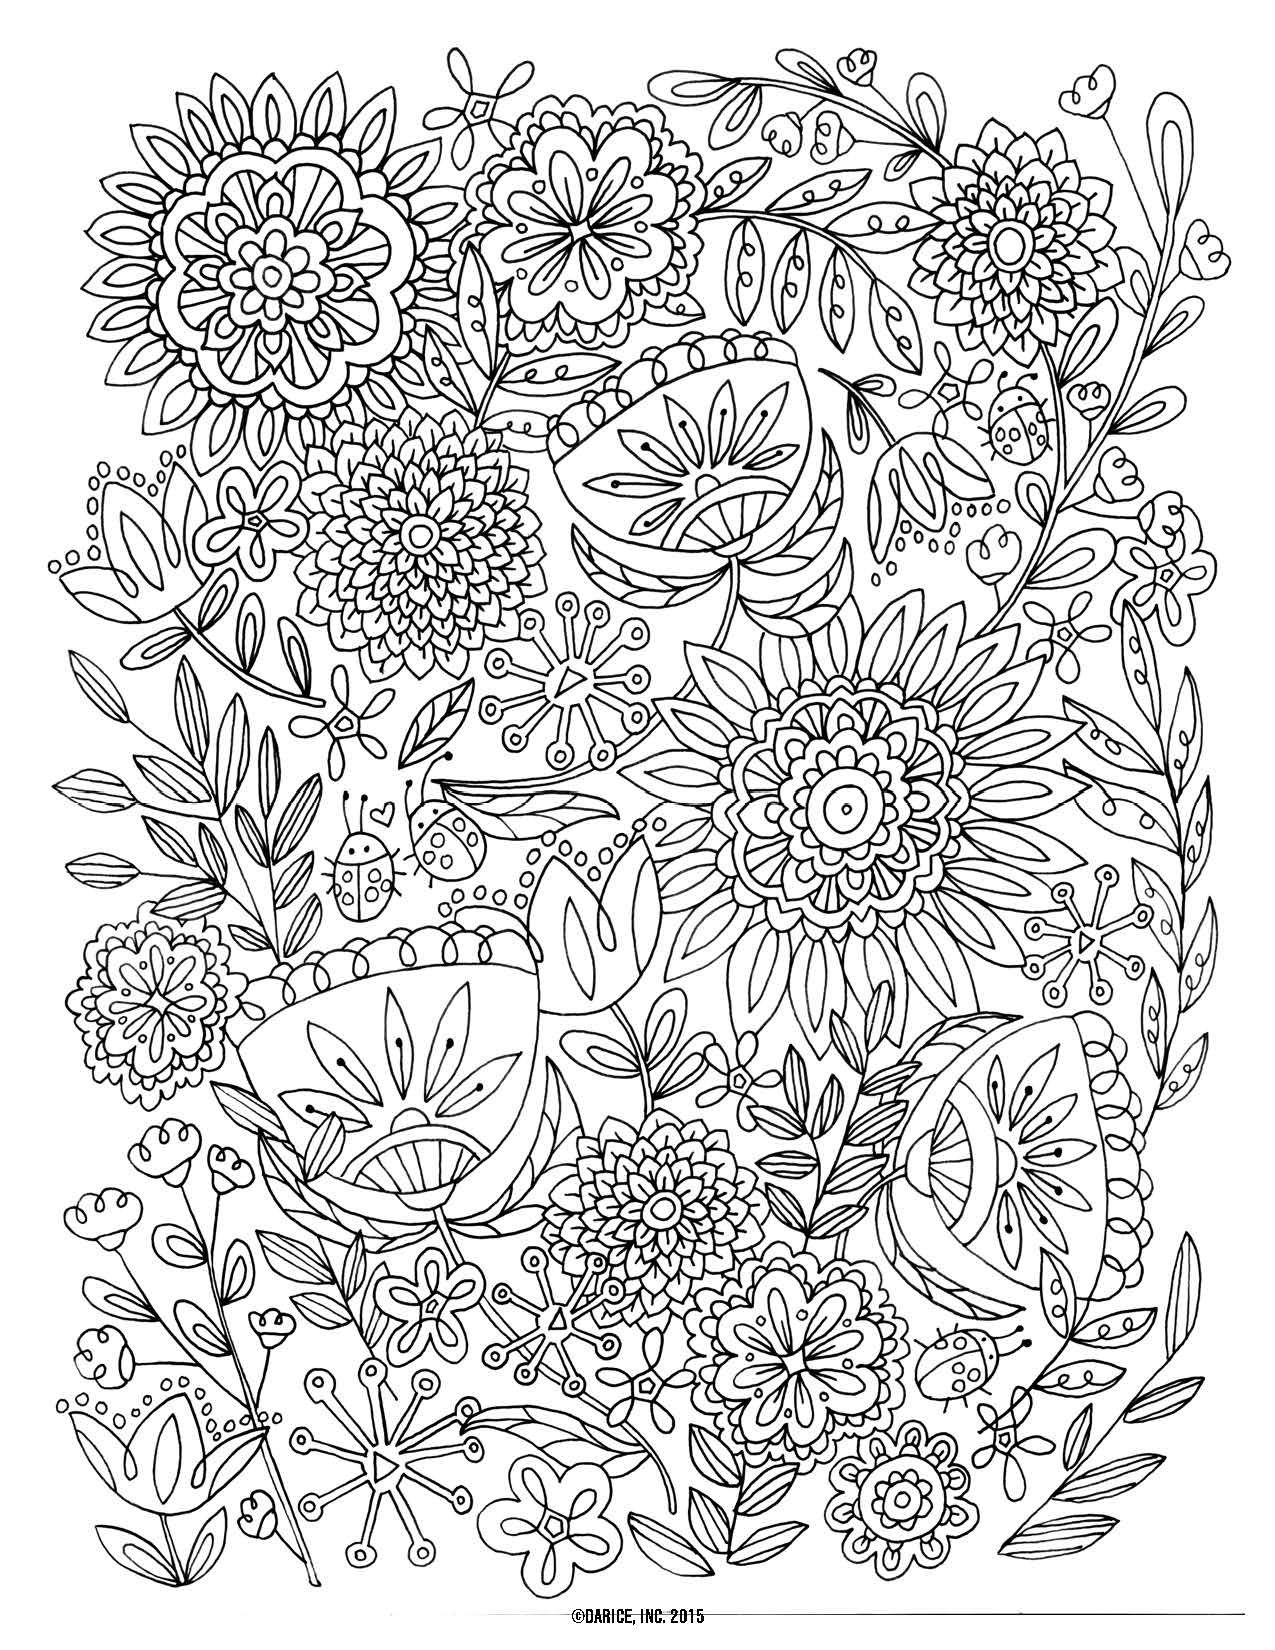 Colouring in for adults why - Free Floral Printable Coloring Page From Filthymuggle Com Adult Coloring Page Pinterest Floral Free And Adult Coloring